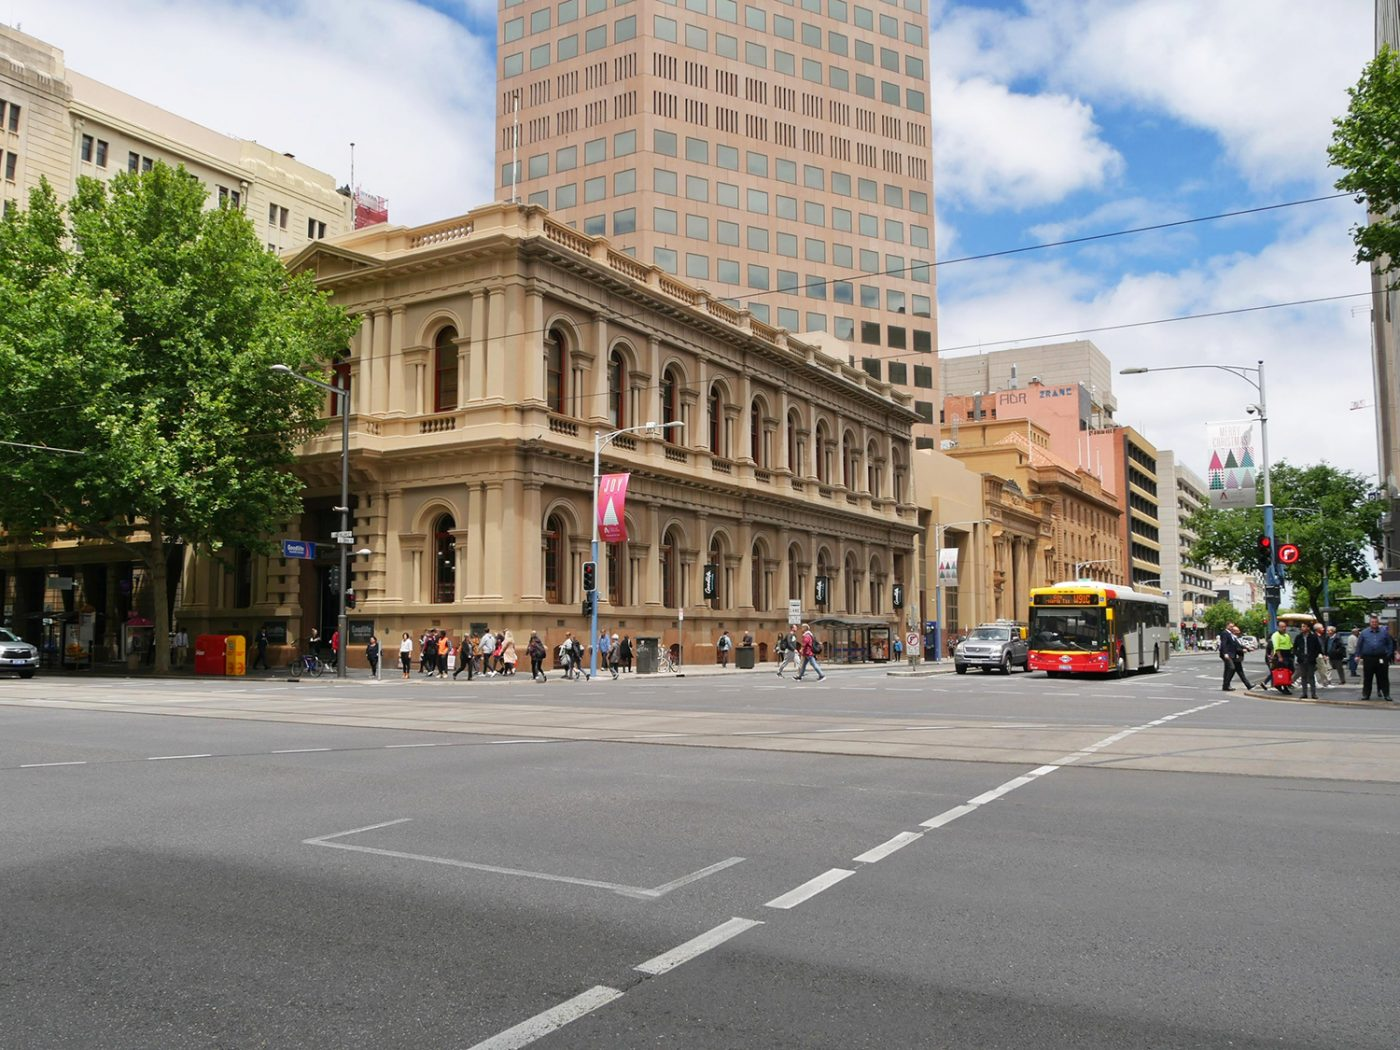 Adelaide city centre - what to do in Adelaide